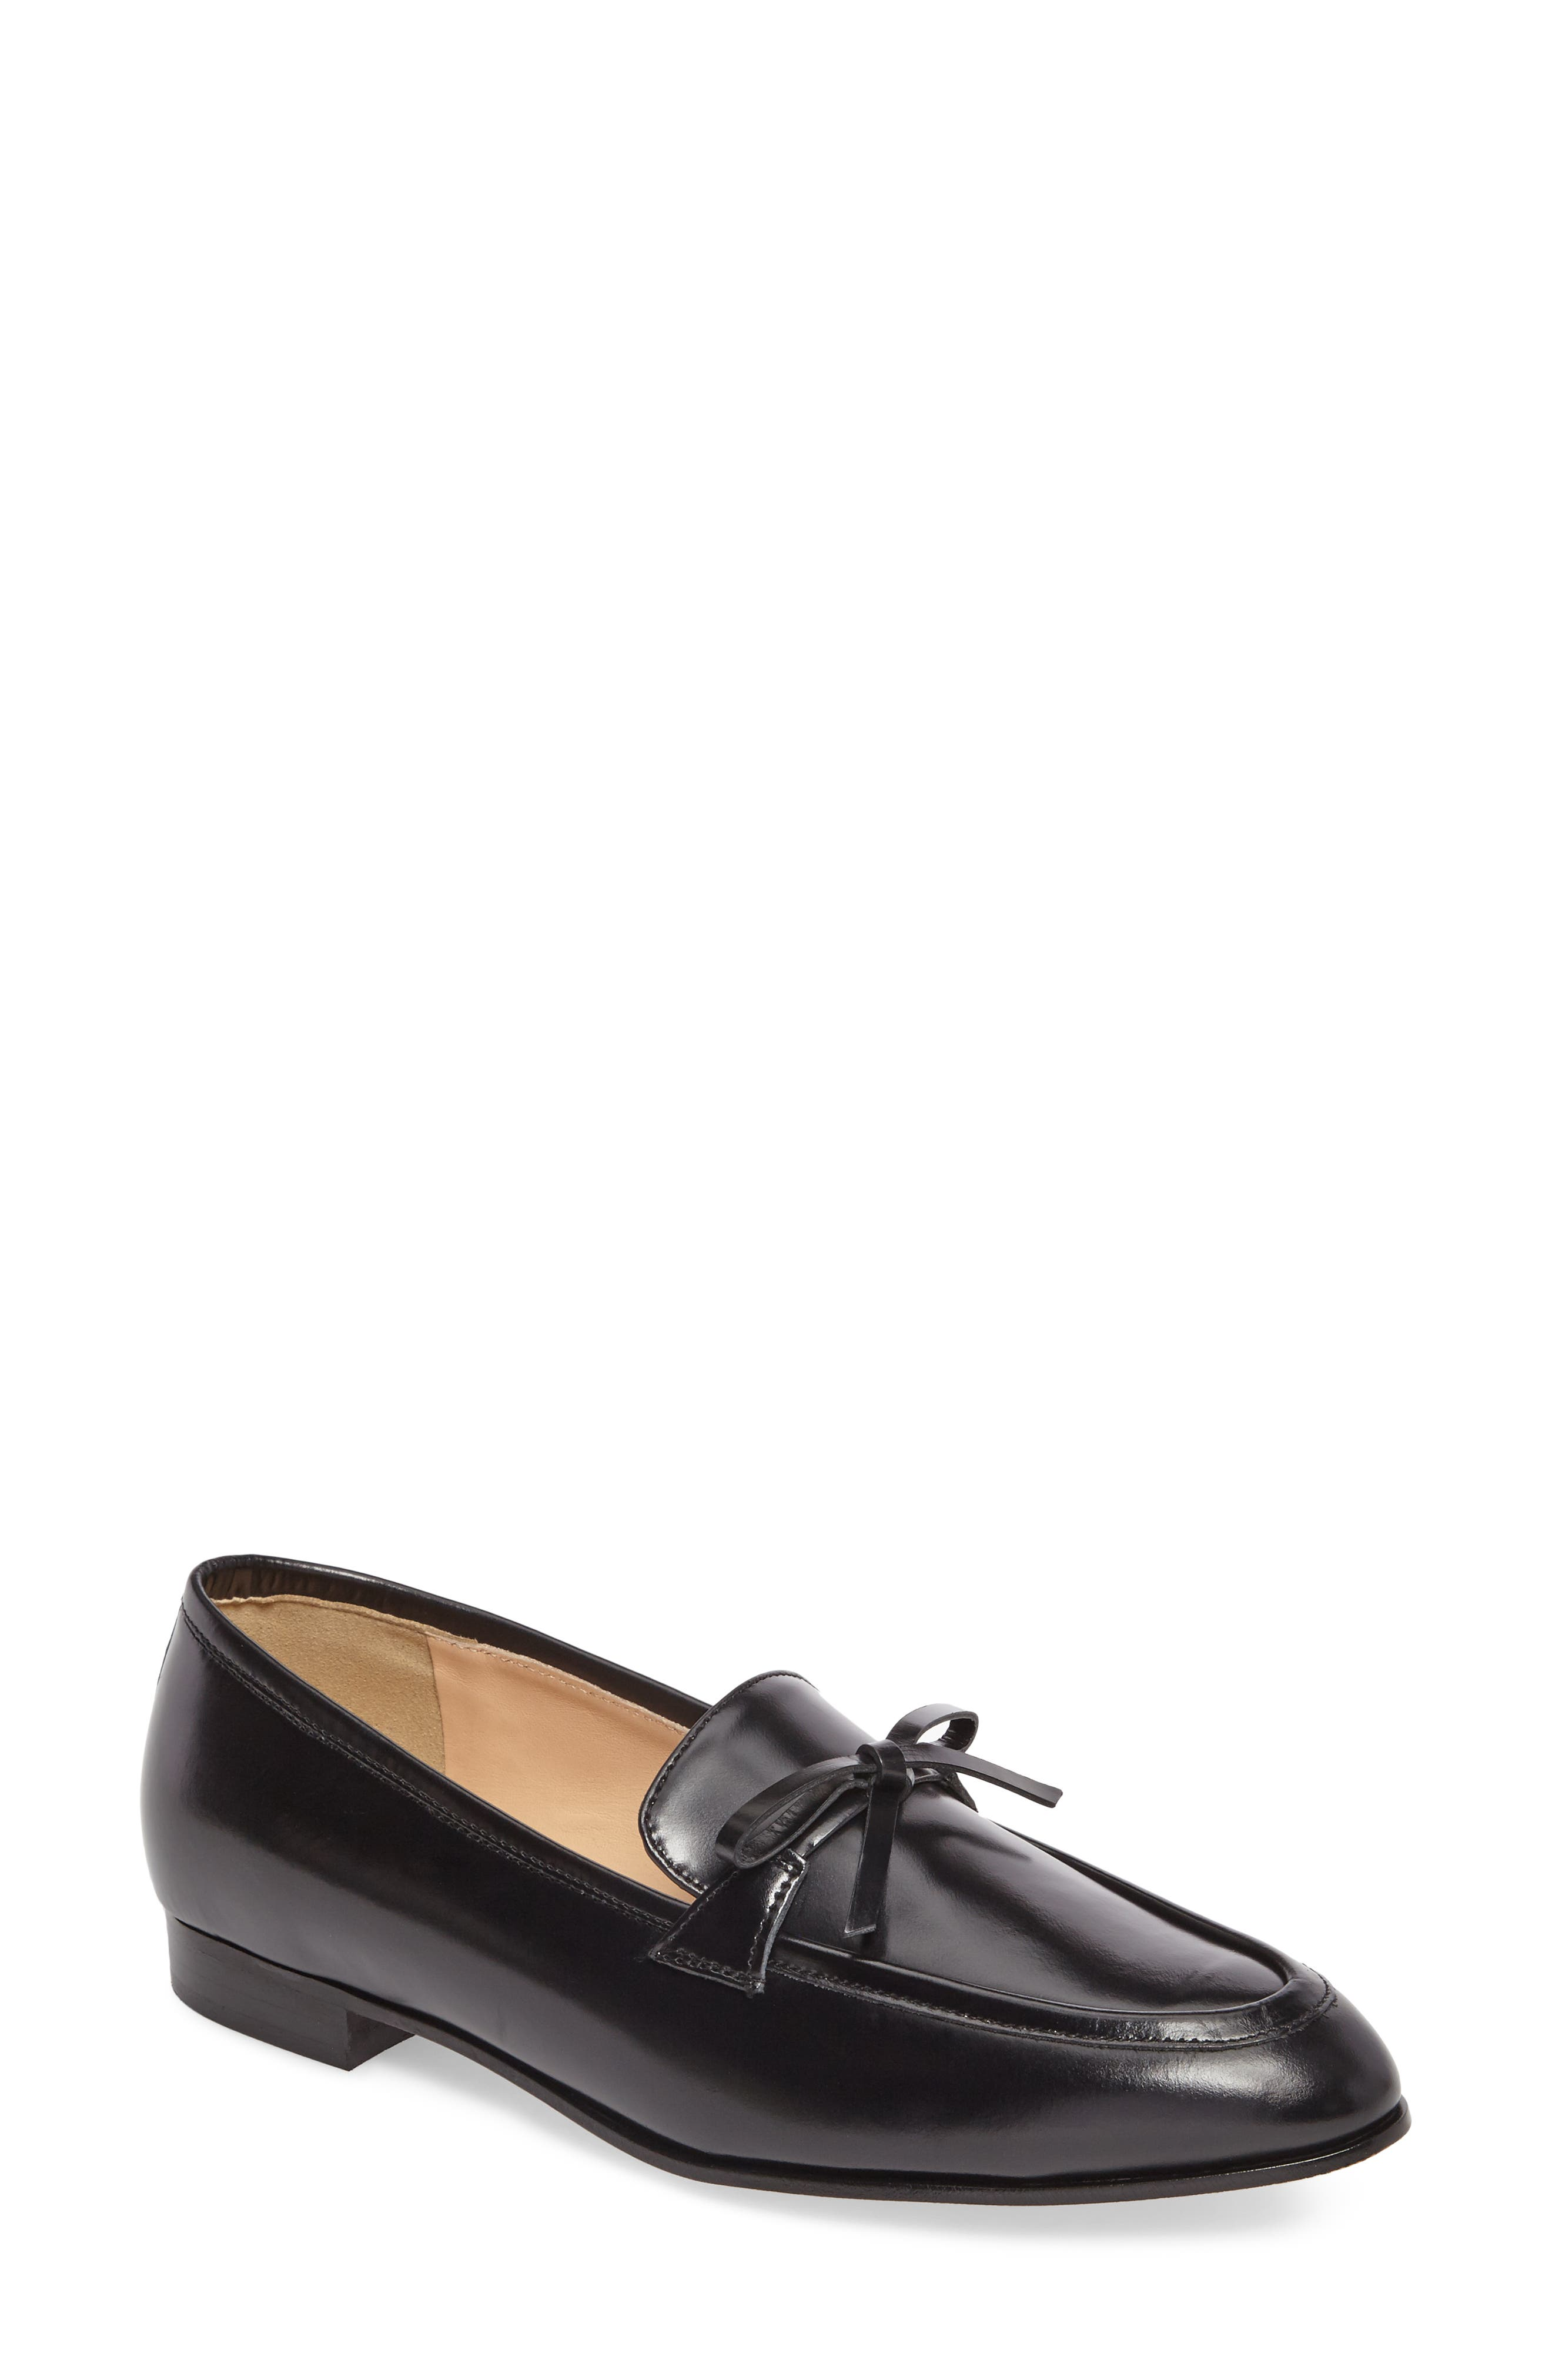 Bow Loafer,                         Main,                         color, Black Leather